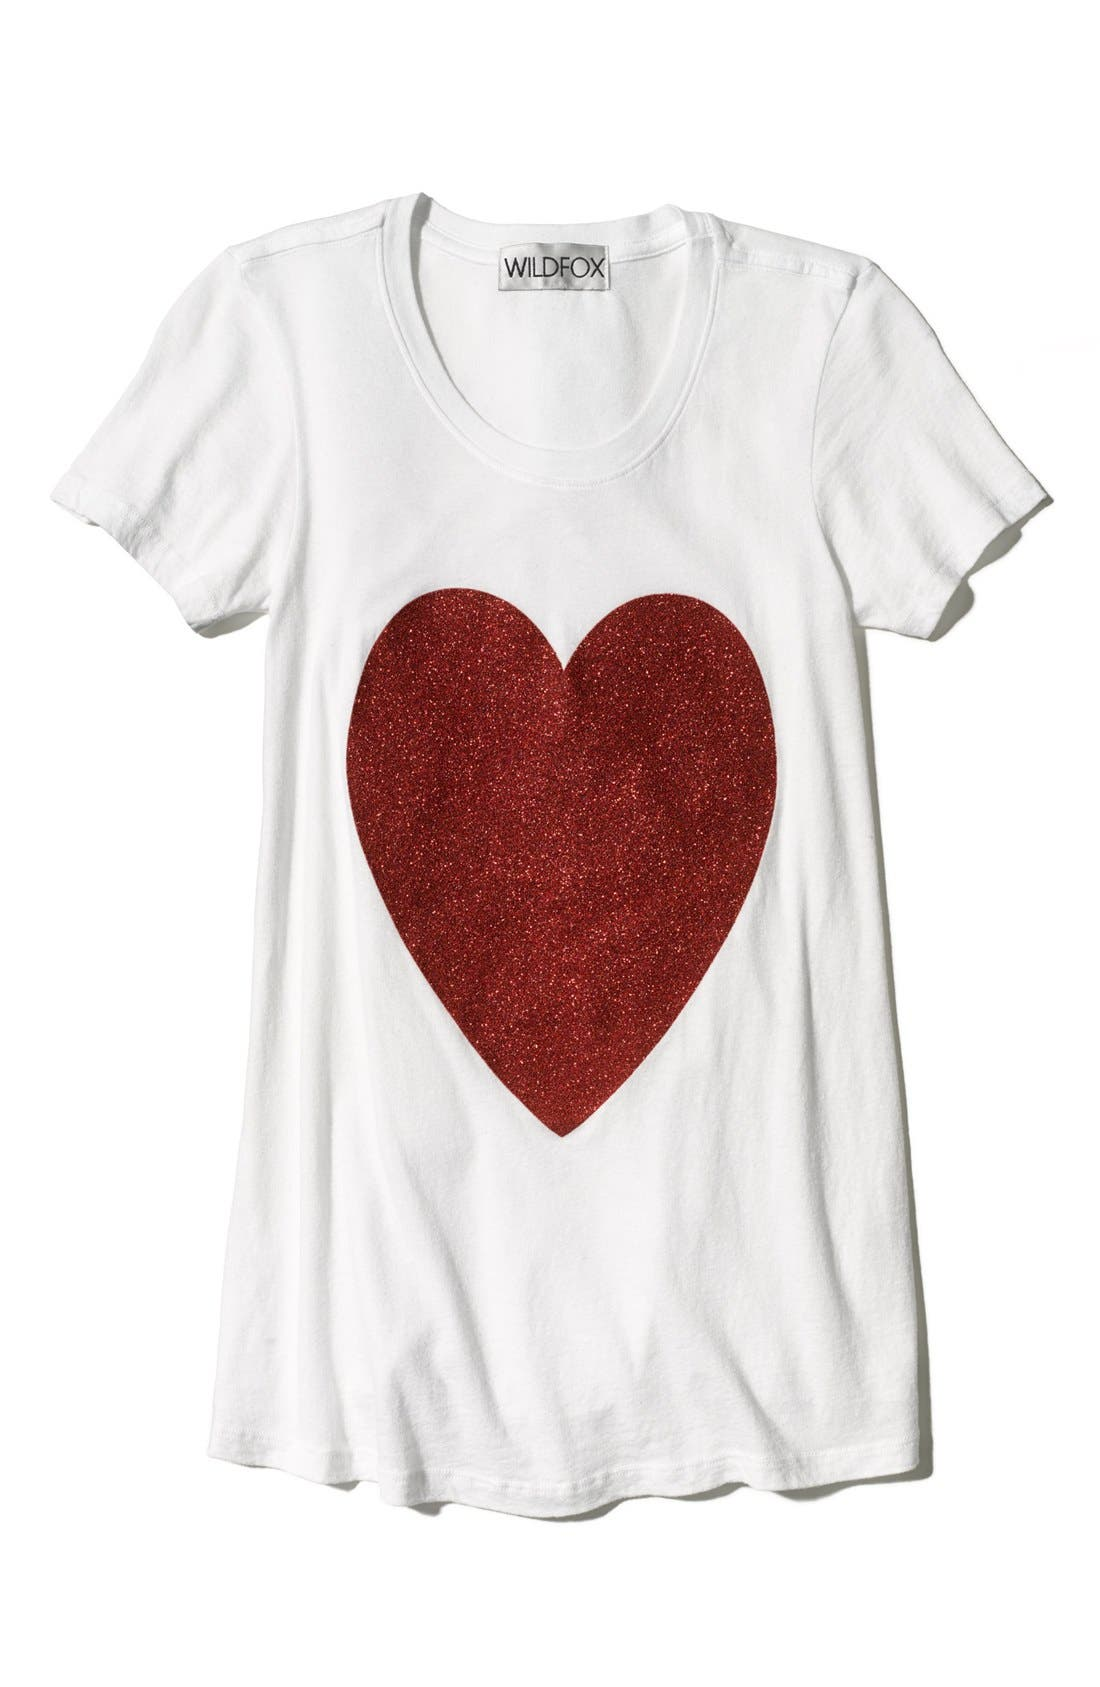 Alternate Image 4  - Wildfox 'Sparkle Heart' Crewneck Cotton Tee (Special Purchase)